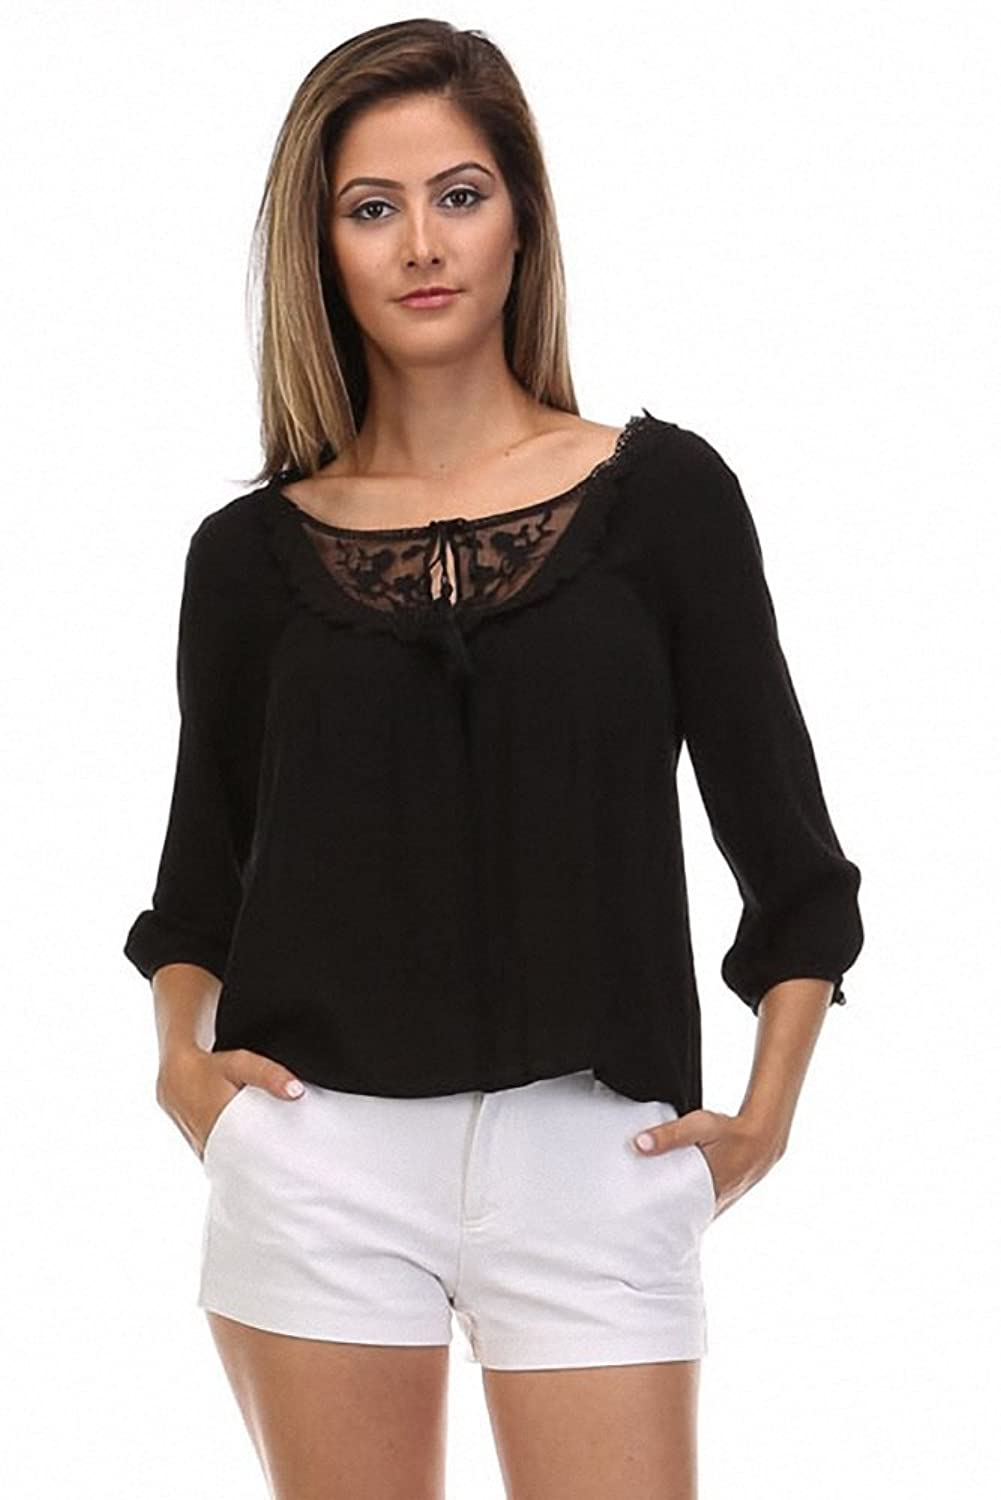 Fashion Hub Women's Neckline Detail 3/4 Sleeve Top